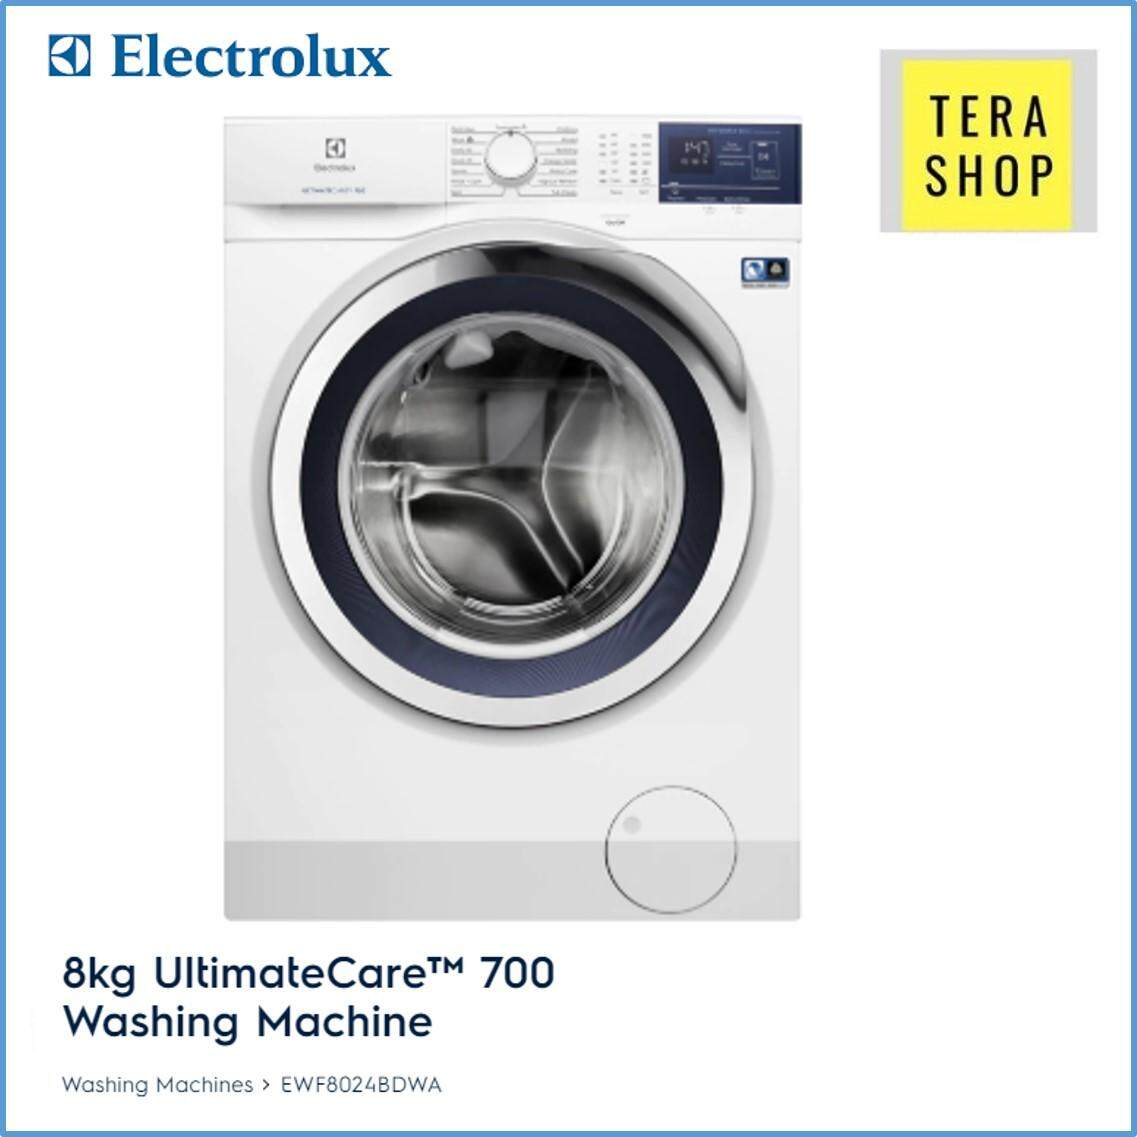 Electrolux Front Load Washing Machine 8KG EWF8024BDWA / EWF8024 ULTIMATECARE™ 800 WITH VAPOUR CARE